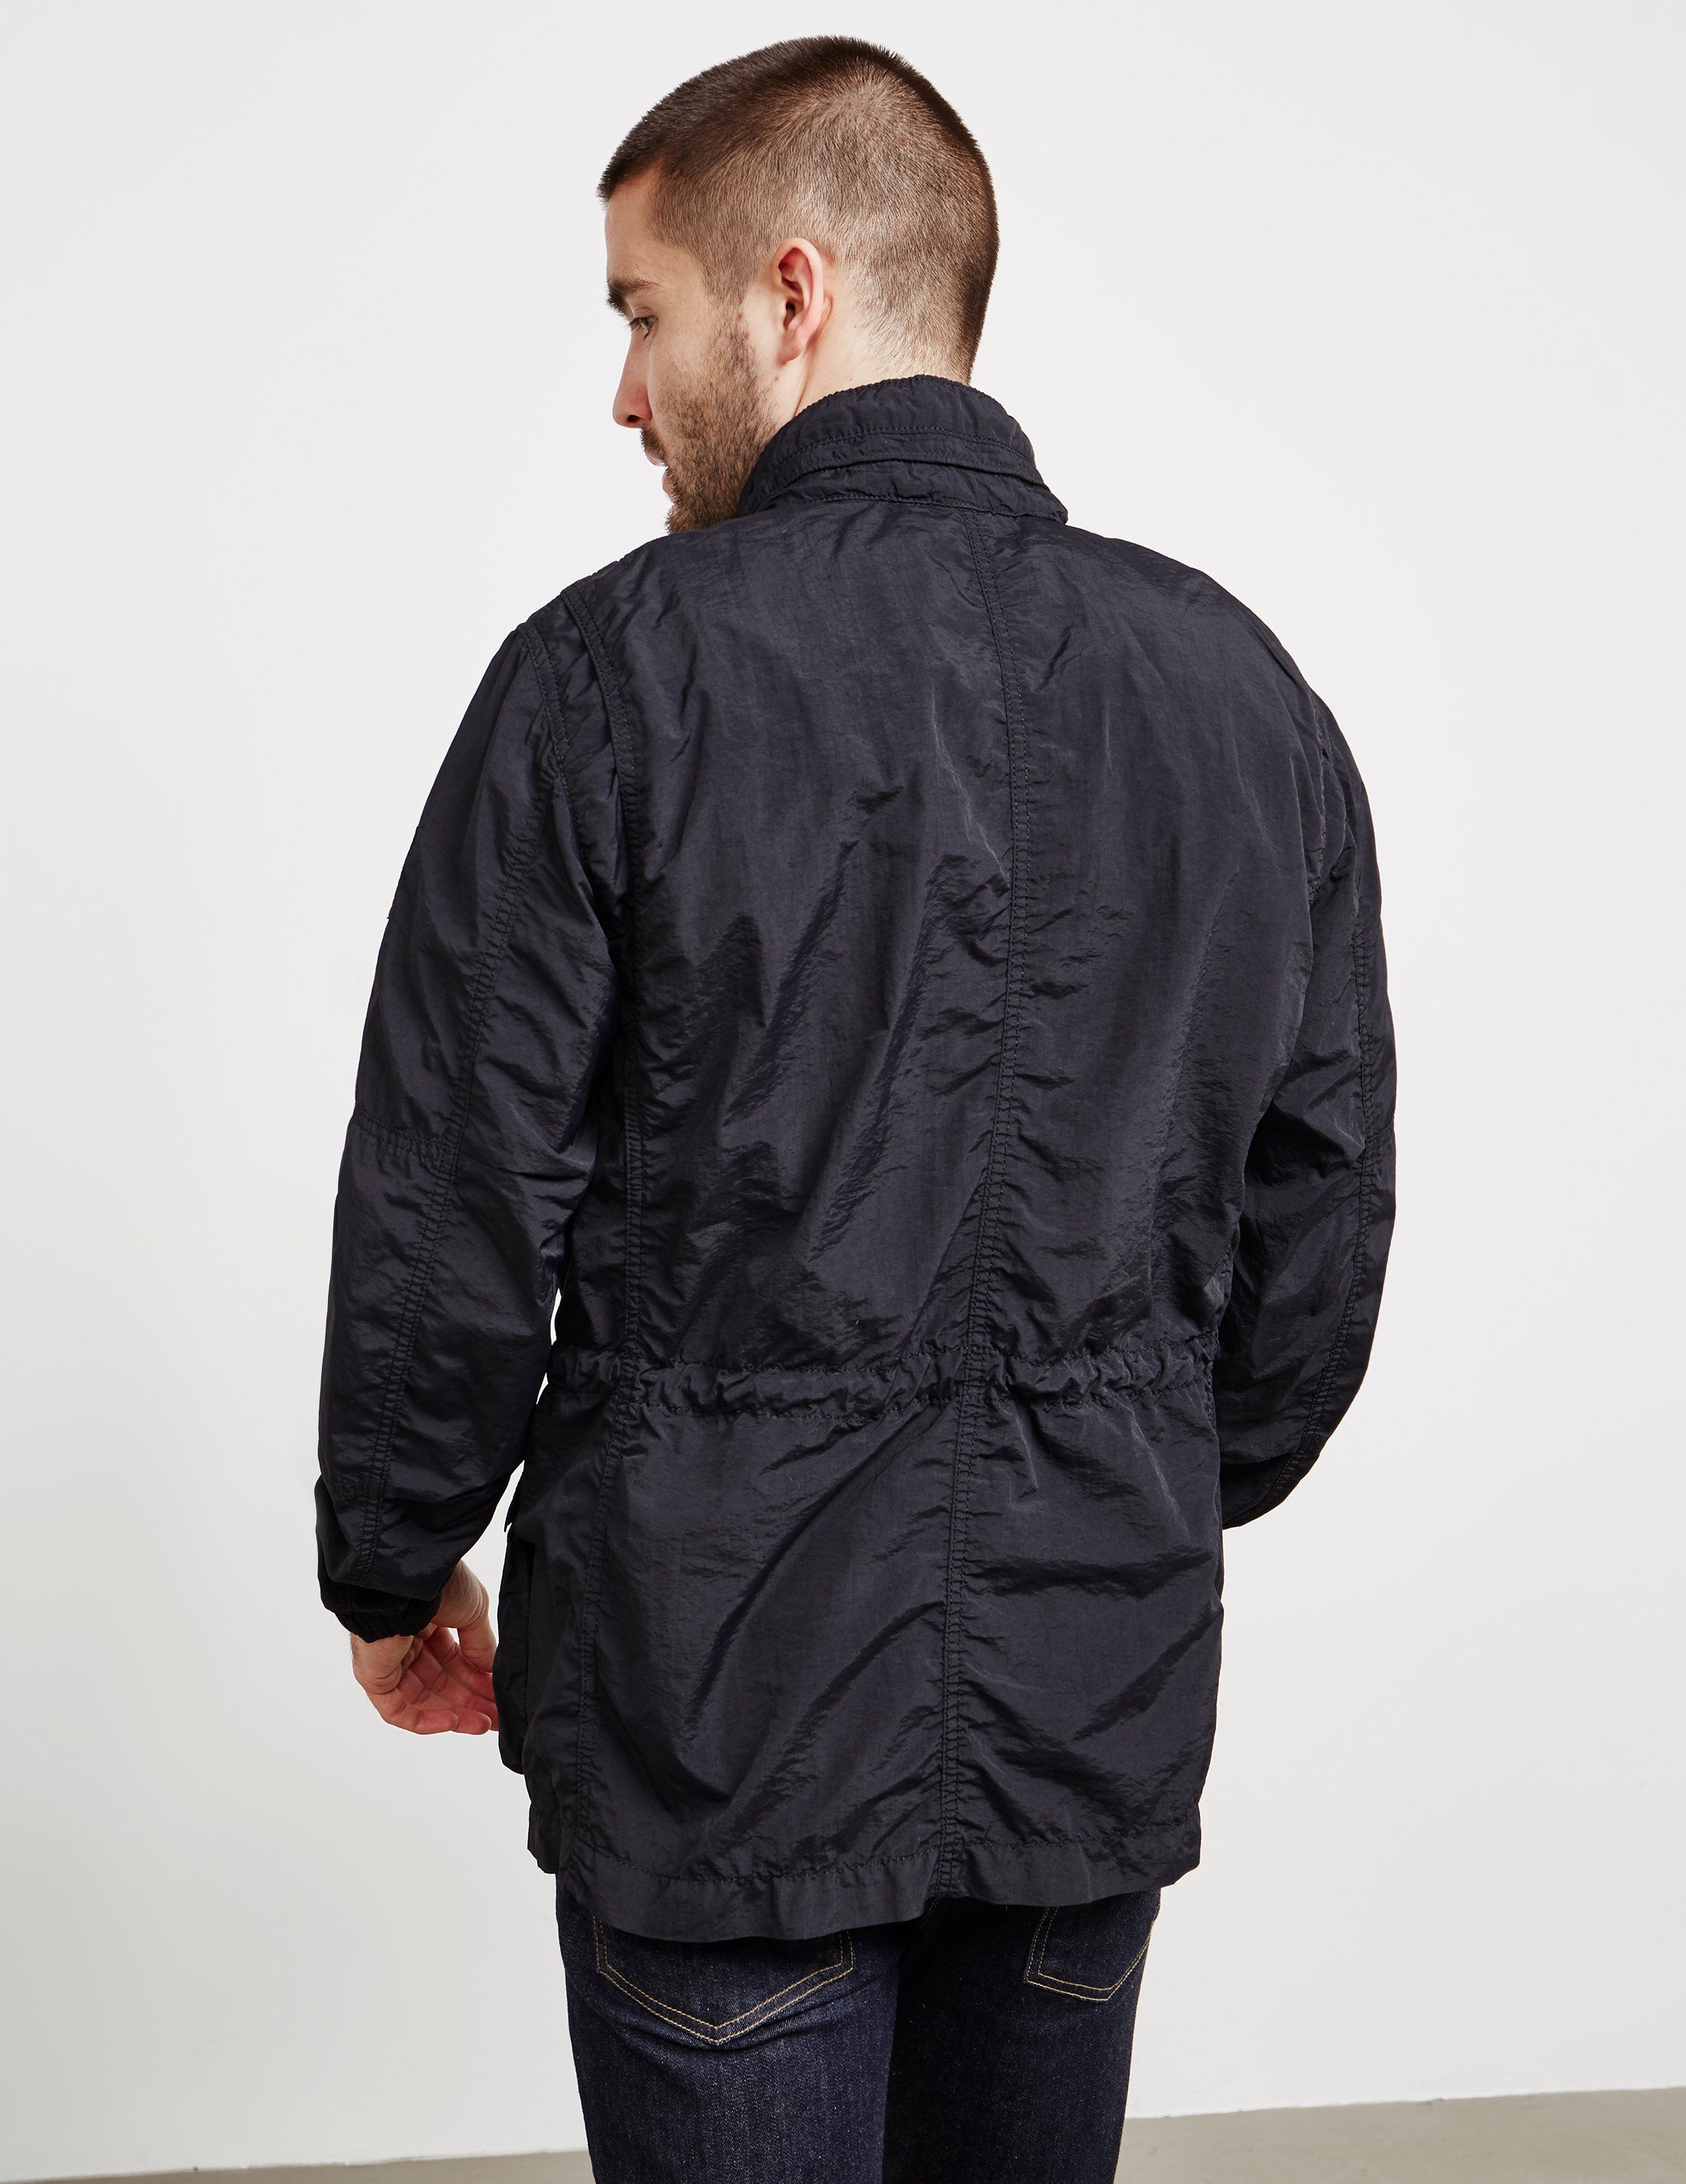 Belstaff Garment Dyed Four Pocket Jacket